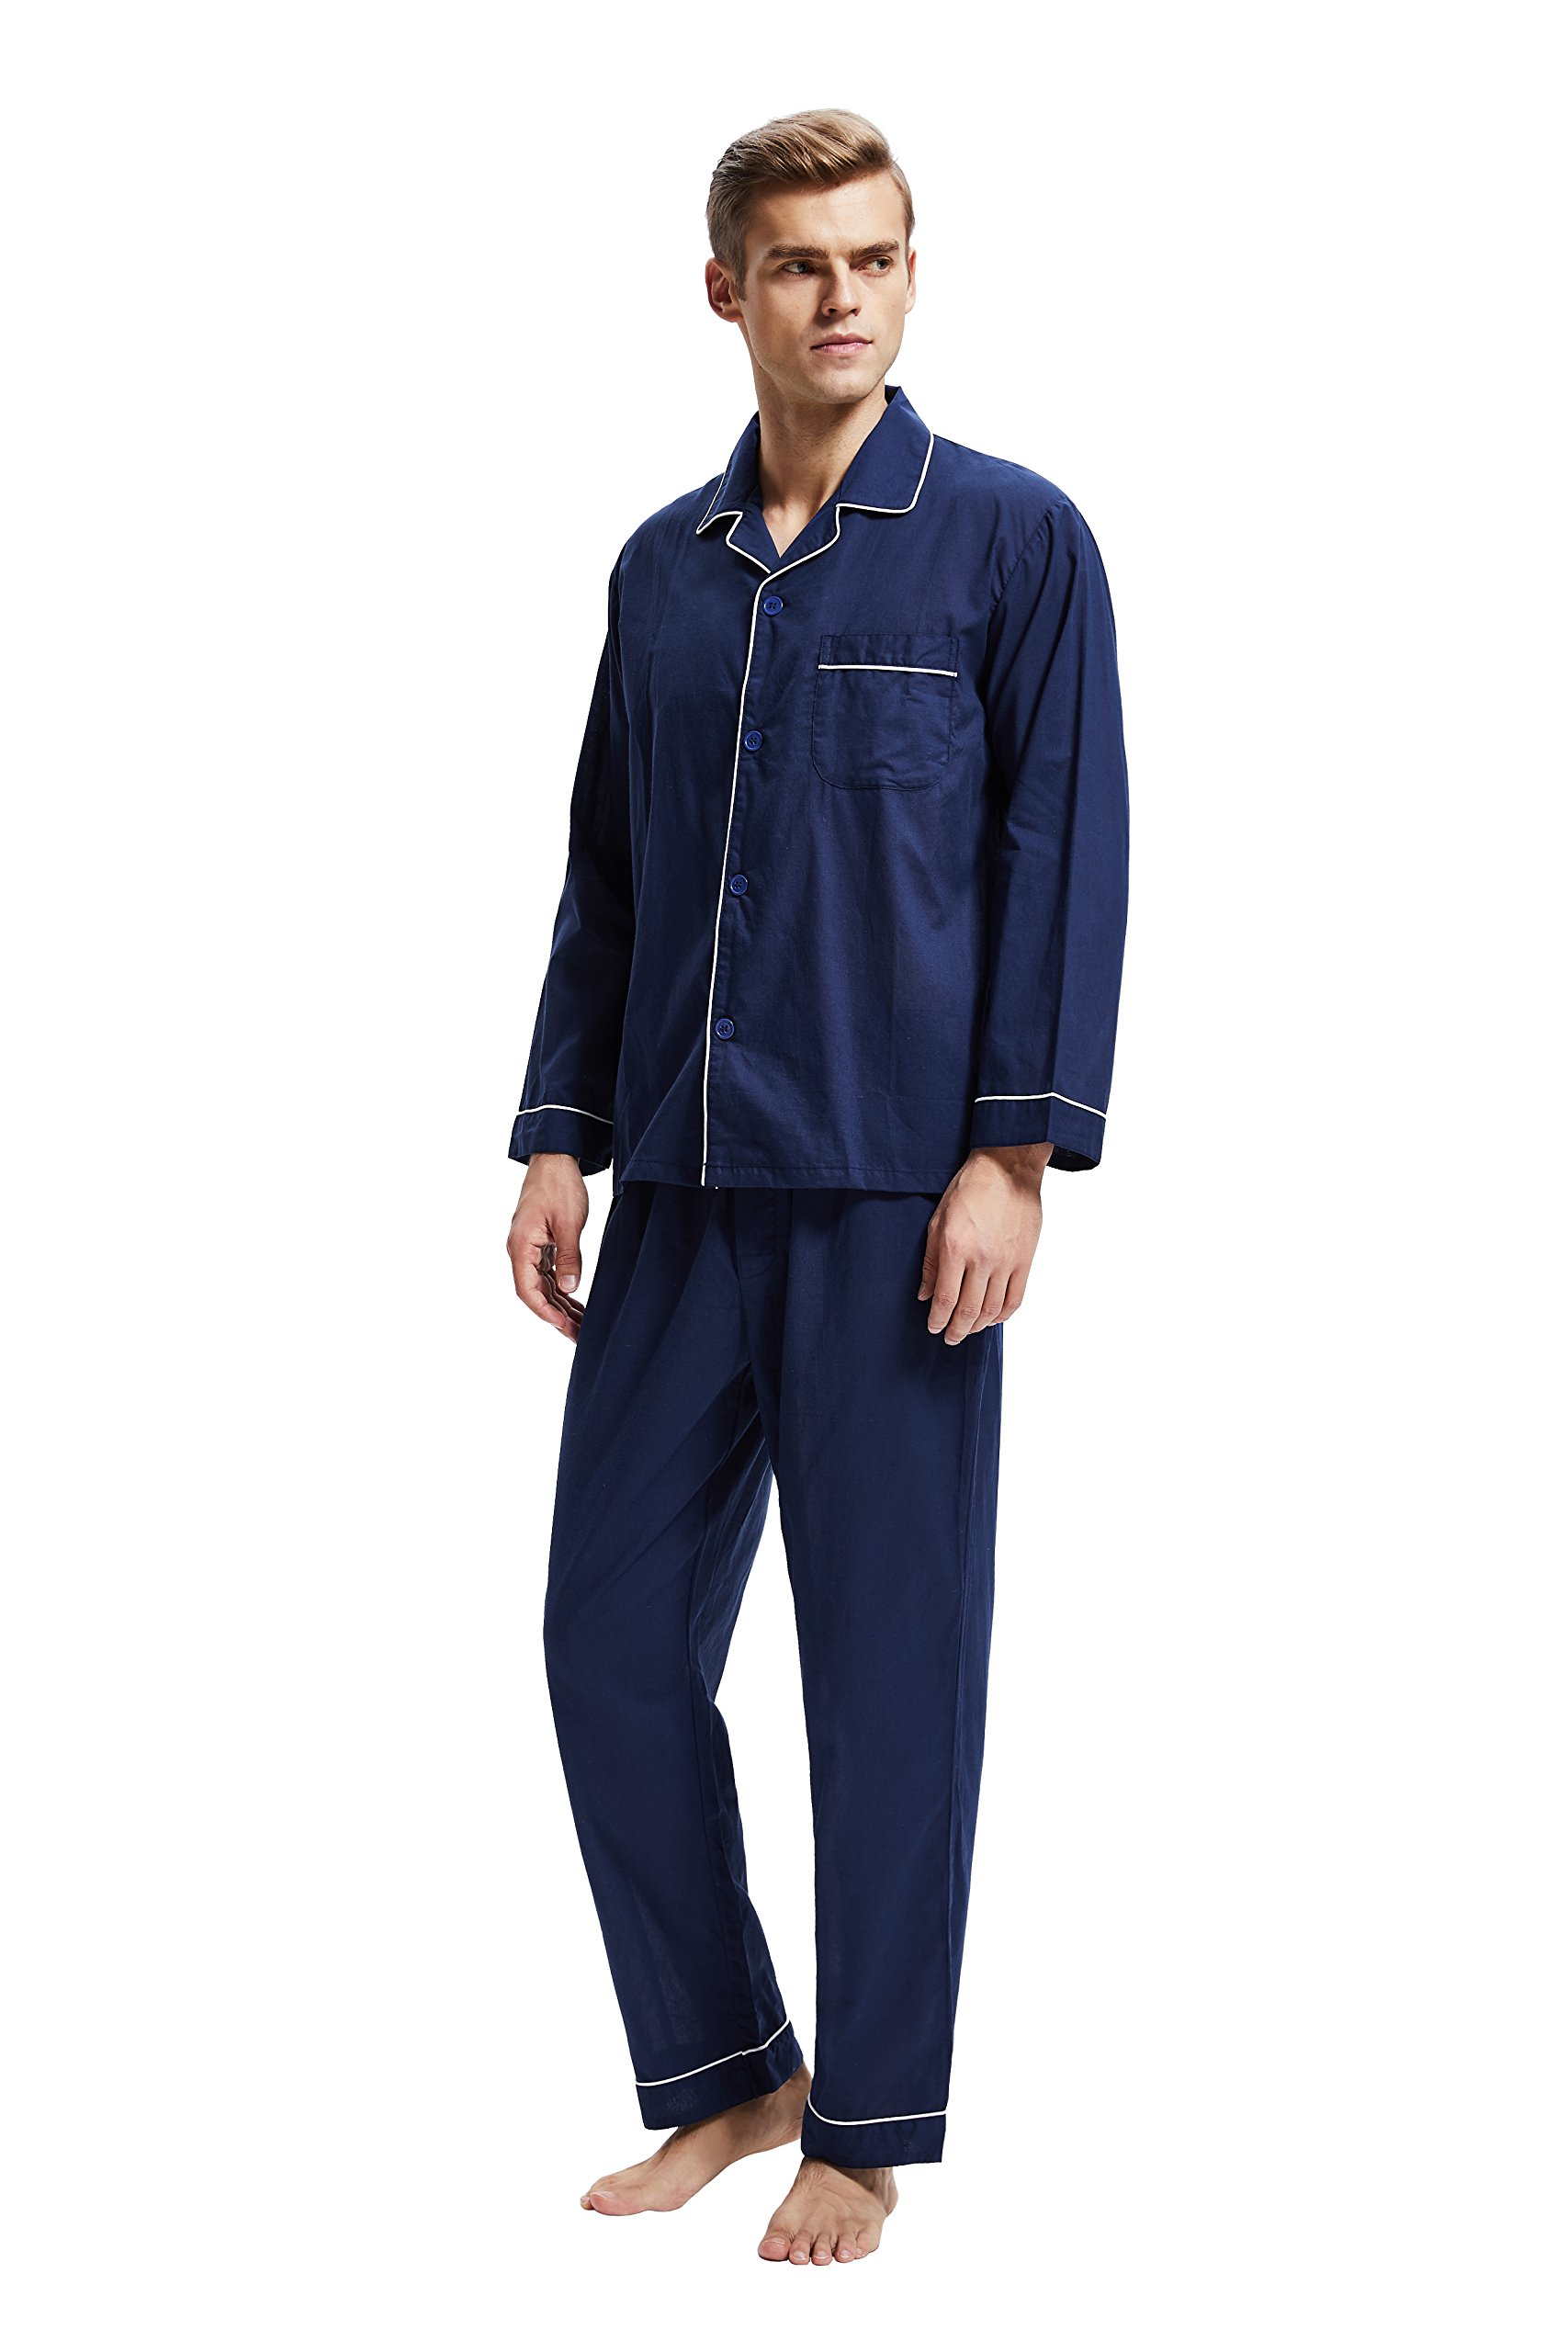 Men's 100% Cotton Pajama Set, Long Sleeve Woven Sleepwear from Tony & Candice (X-Large, Navy Blue with White Piping)